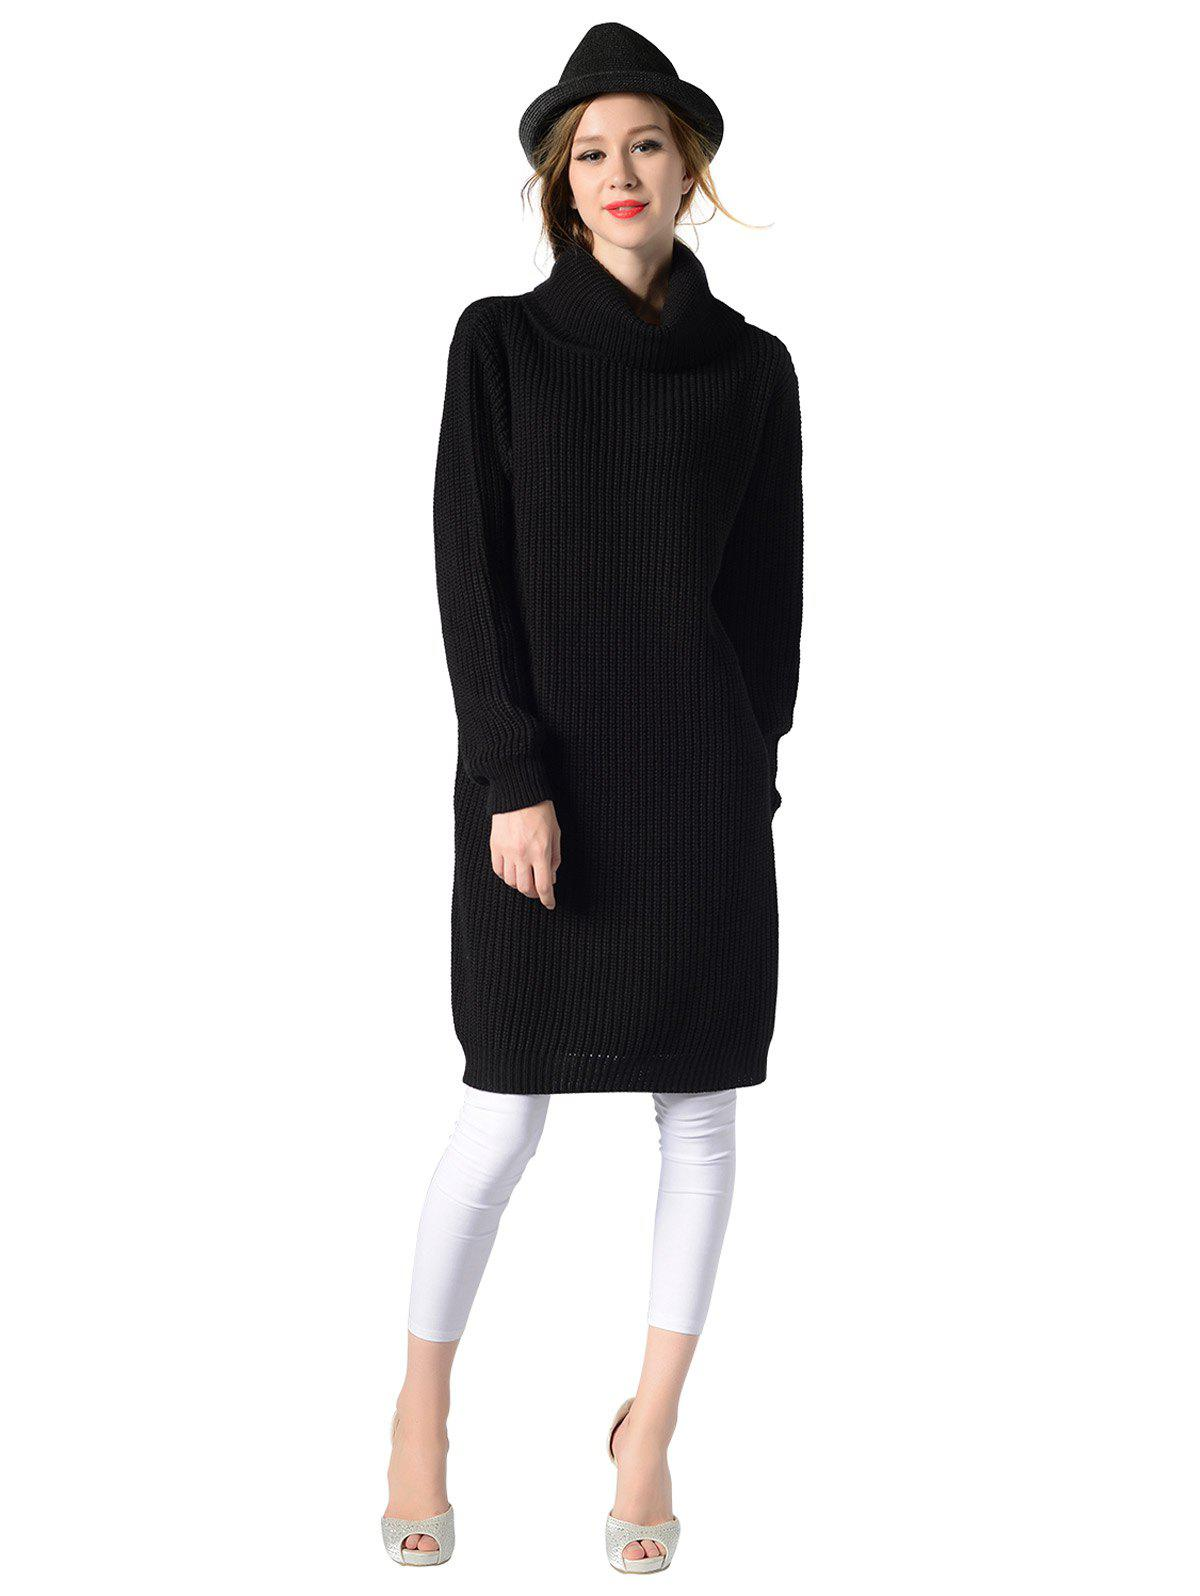 New Women's Turtleneck neck  Long sleeves rib kniting  casual Basic  sweater dress